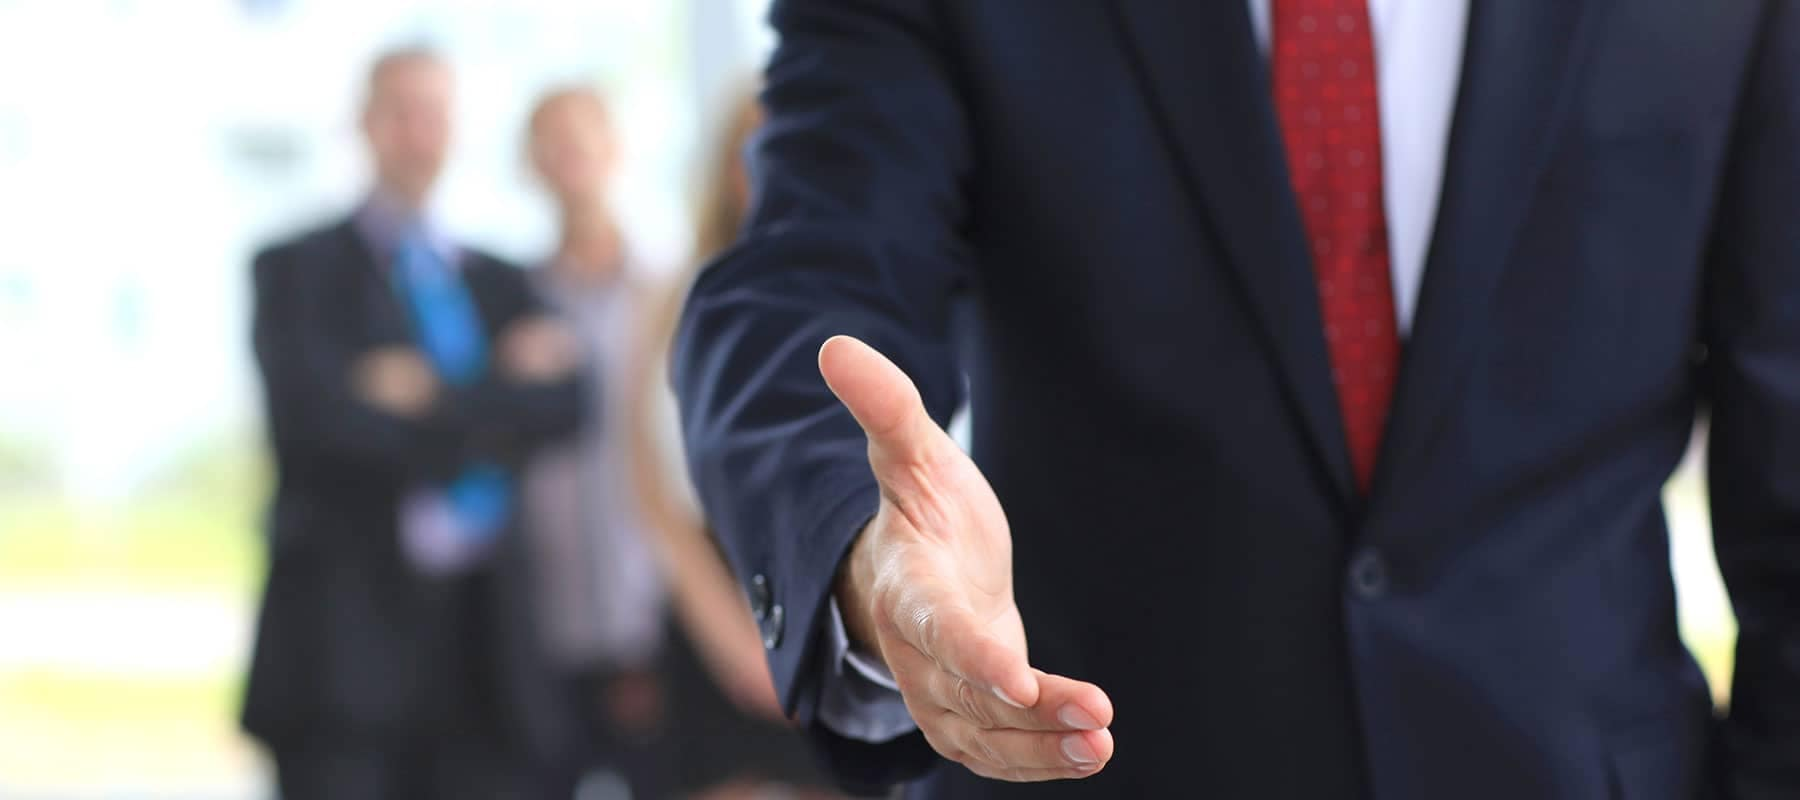 Person reaching out to shake hands